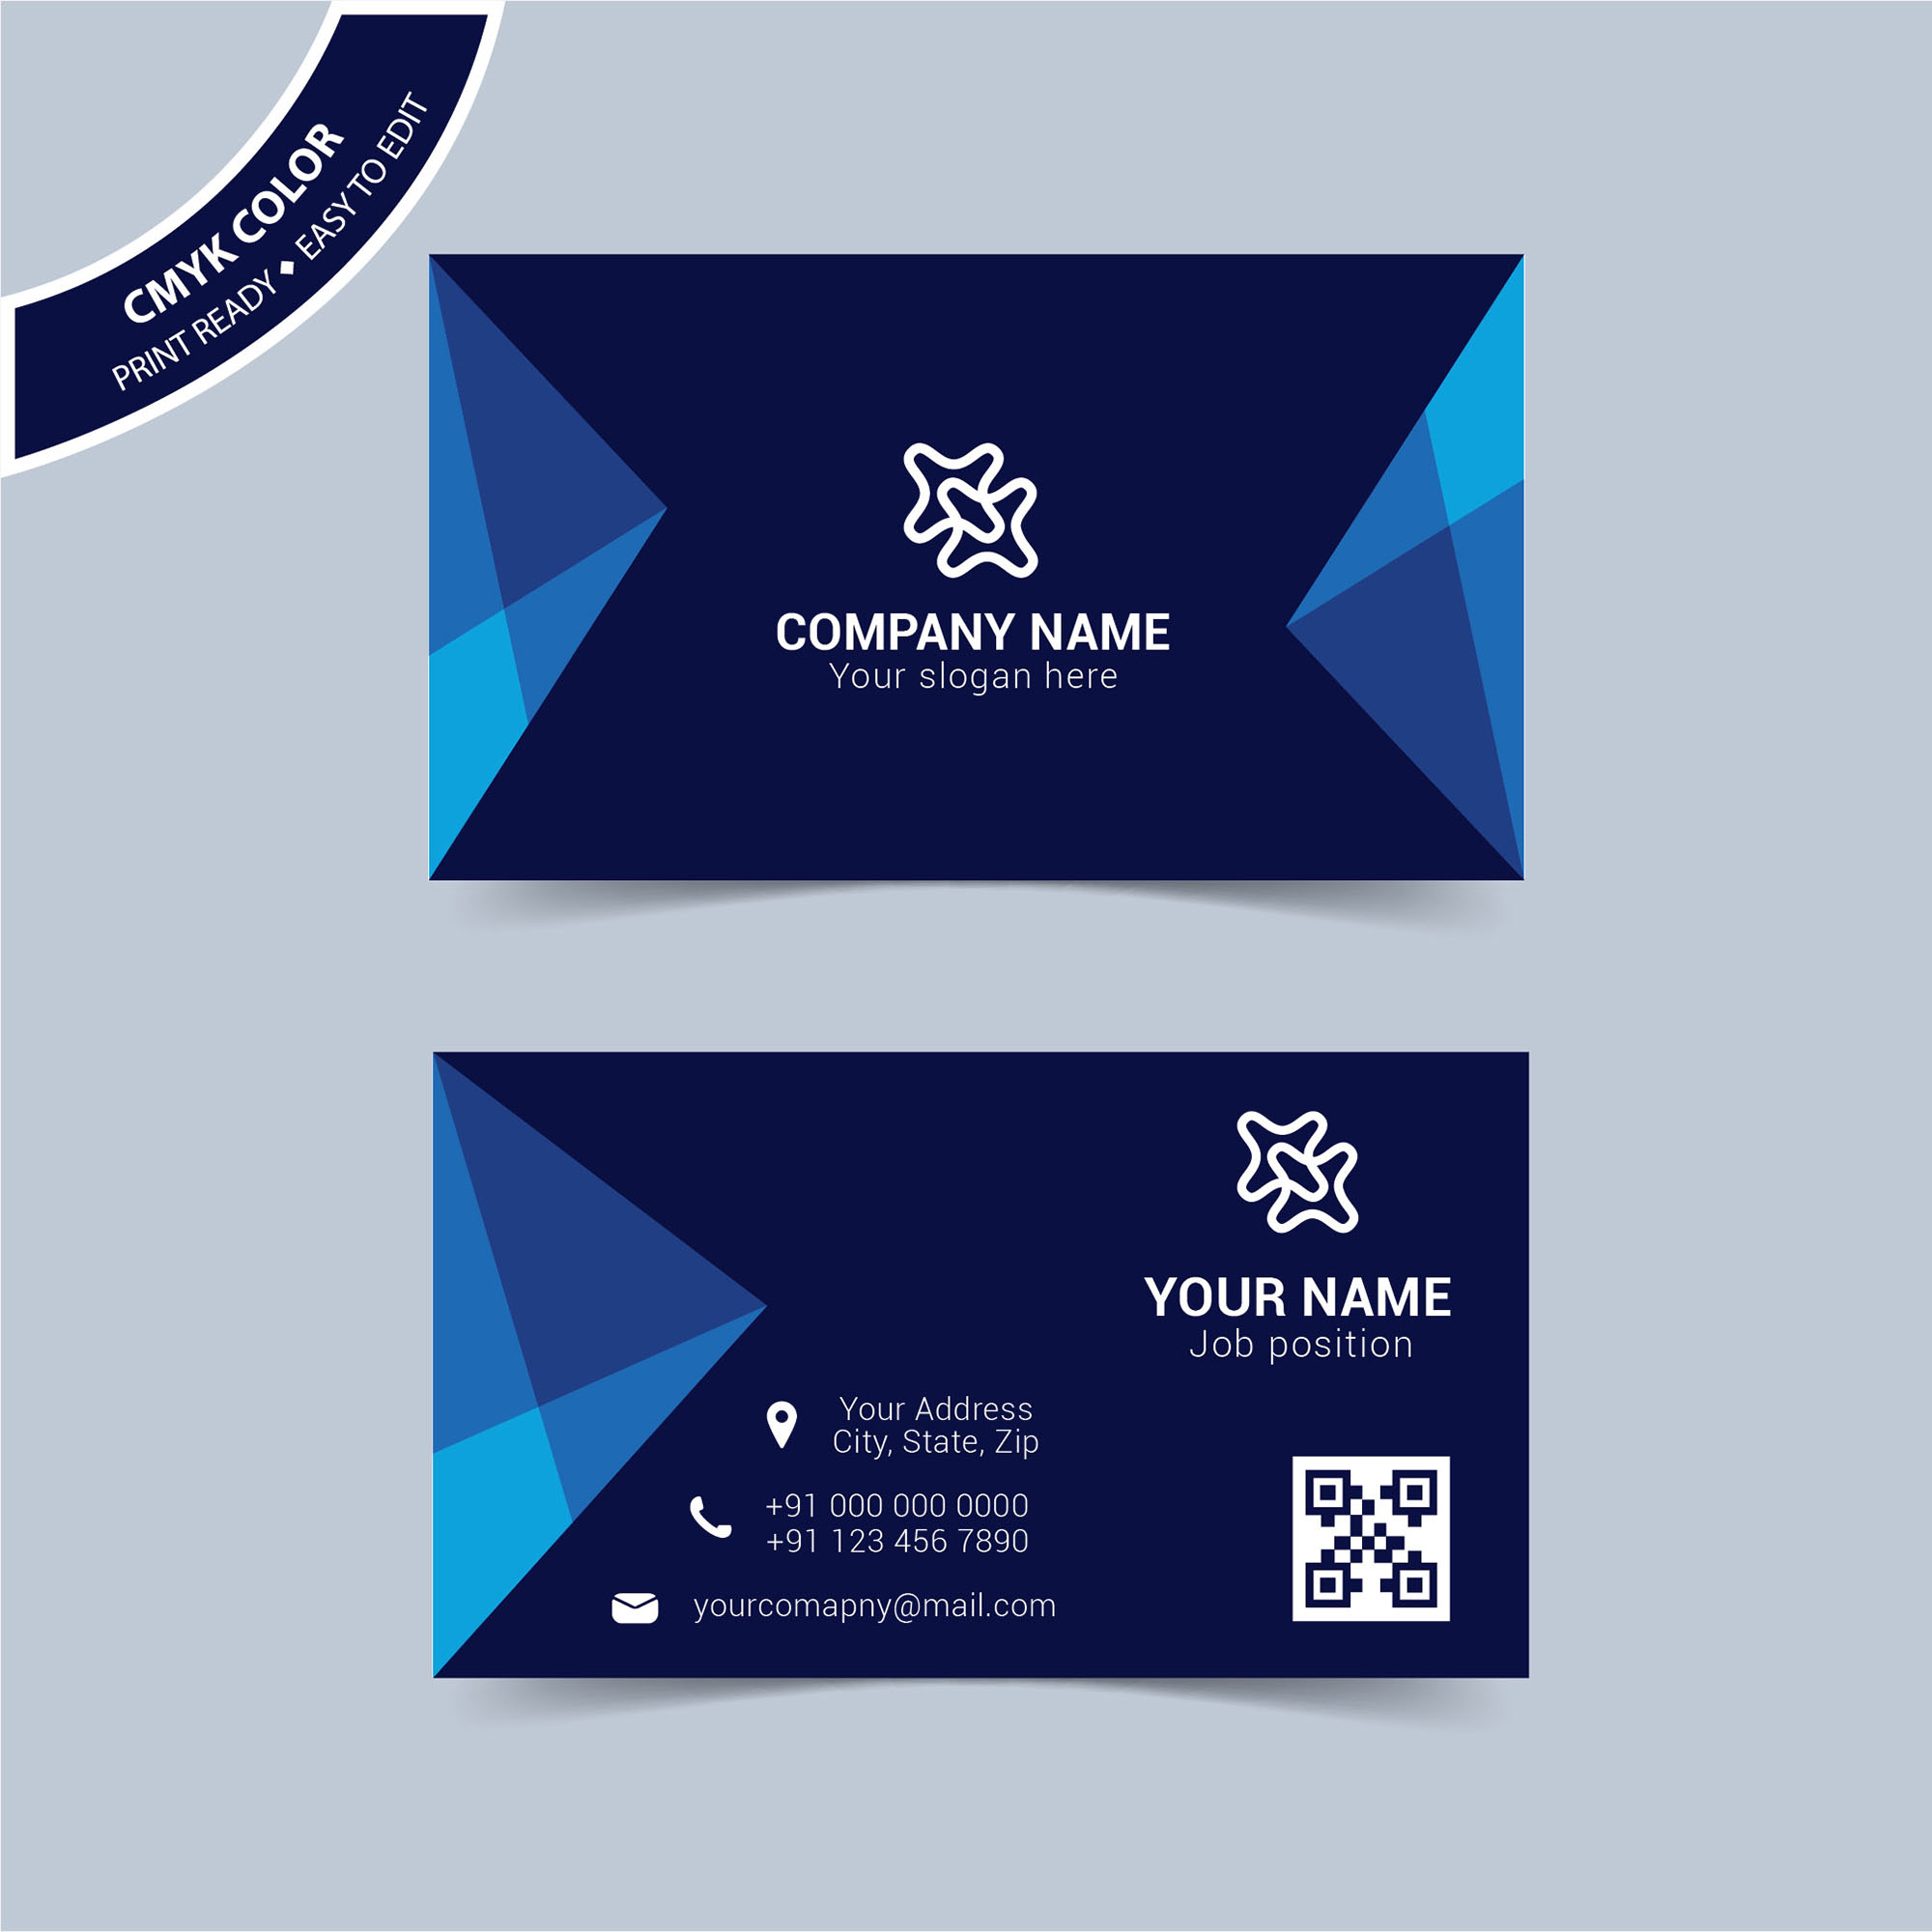 Modern blue business card template free download wisxi business card business cards business card design business card template design templates accmission Gallery